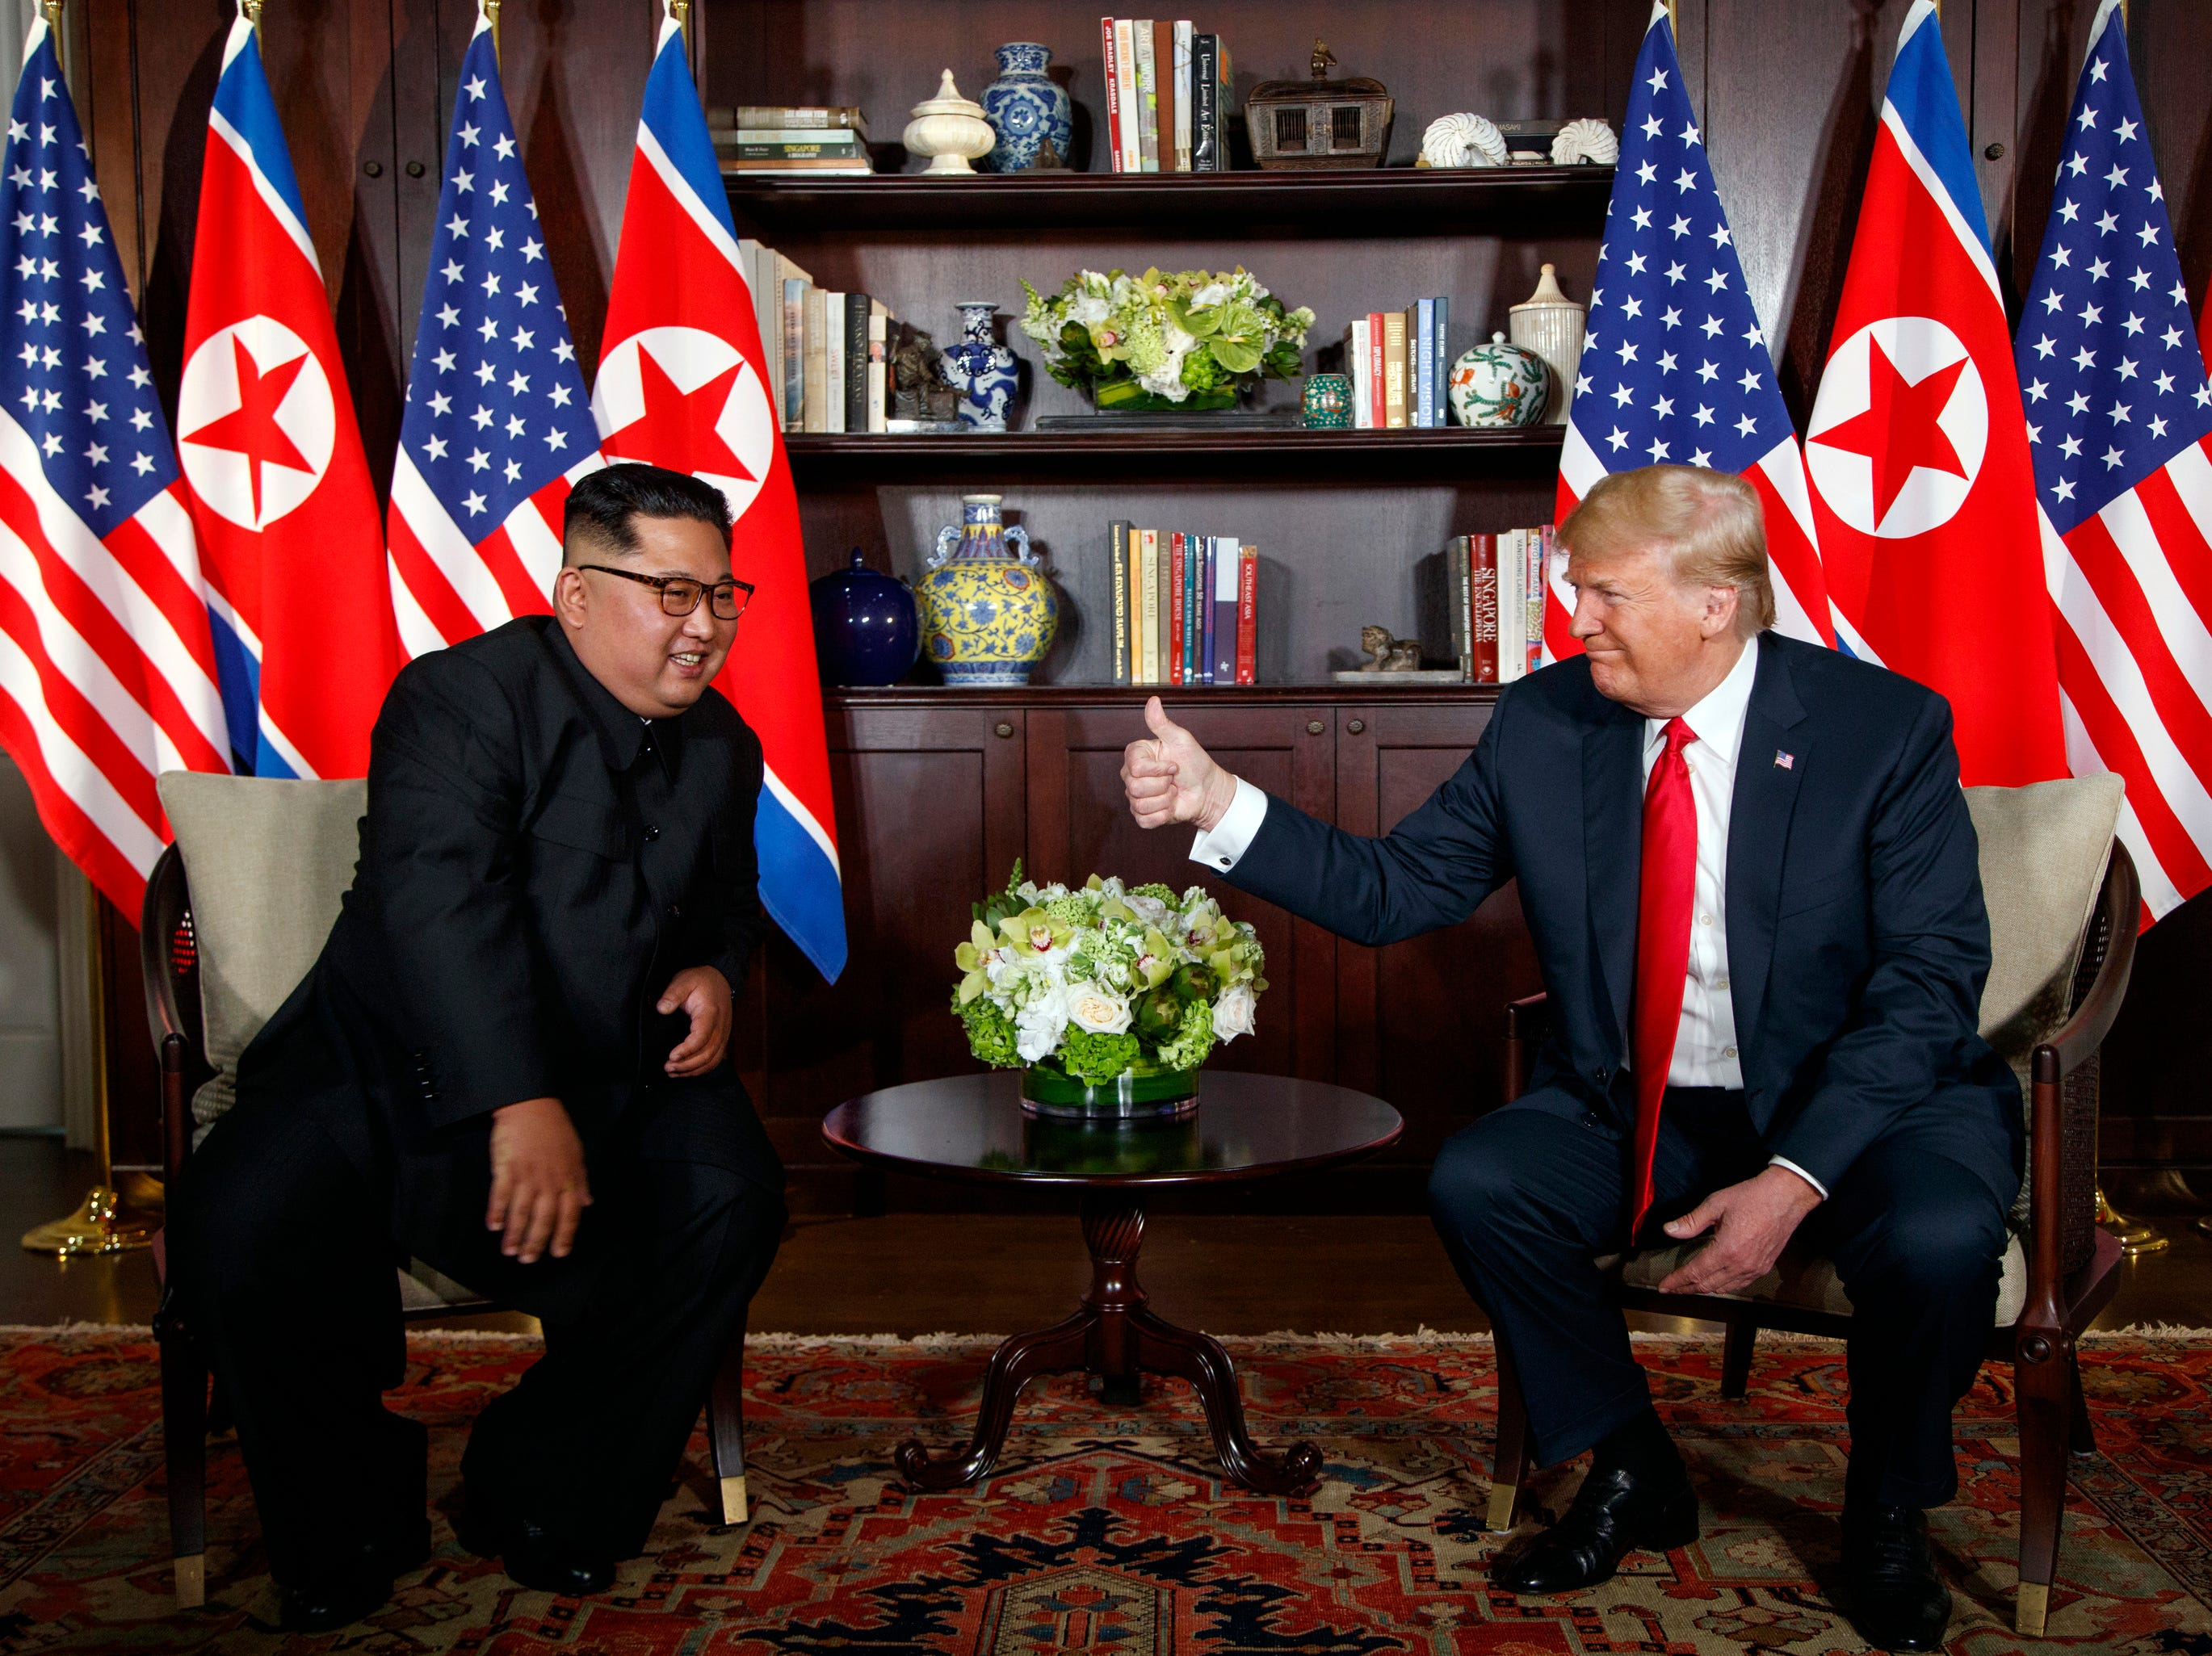 President Donald Trump meets with North Korean leader Kim Jong Un on Sentosa Island in Singapore on June 12, 2018.